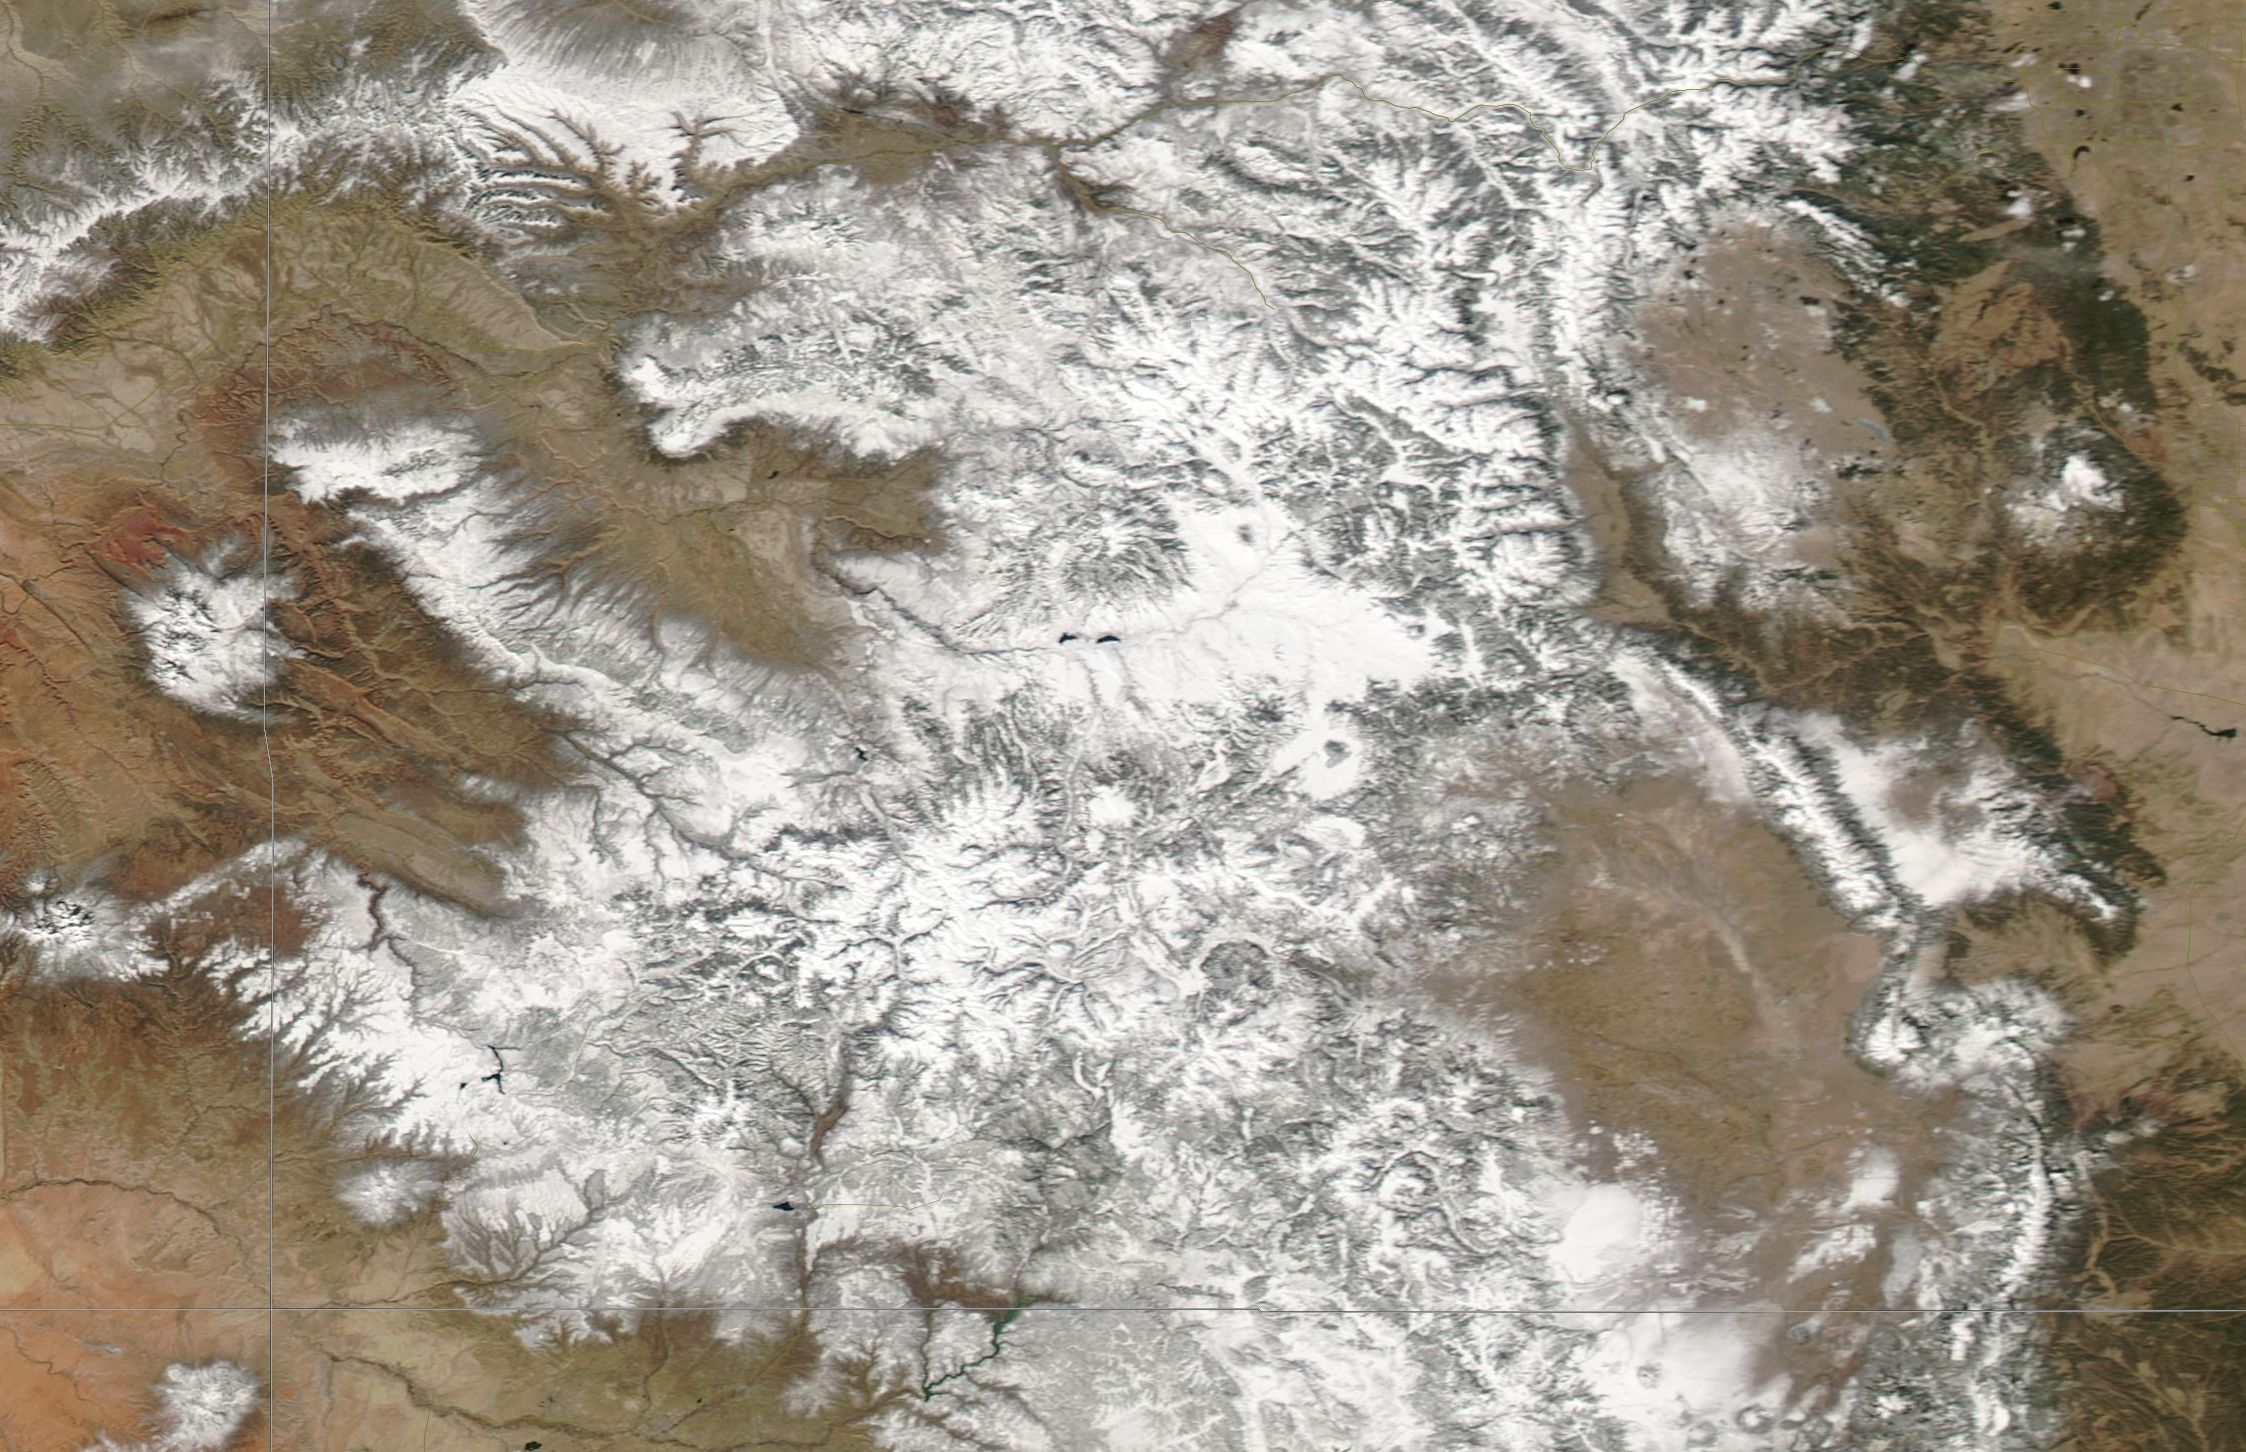 Snow cover in Colorado on March 2, 2017. Snow cover is widespread following a productive Dec/Jan/Feb.